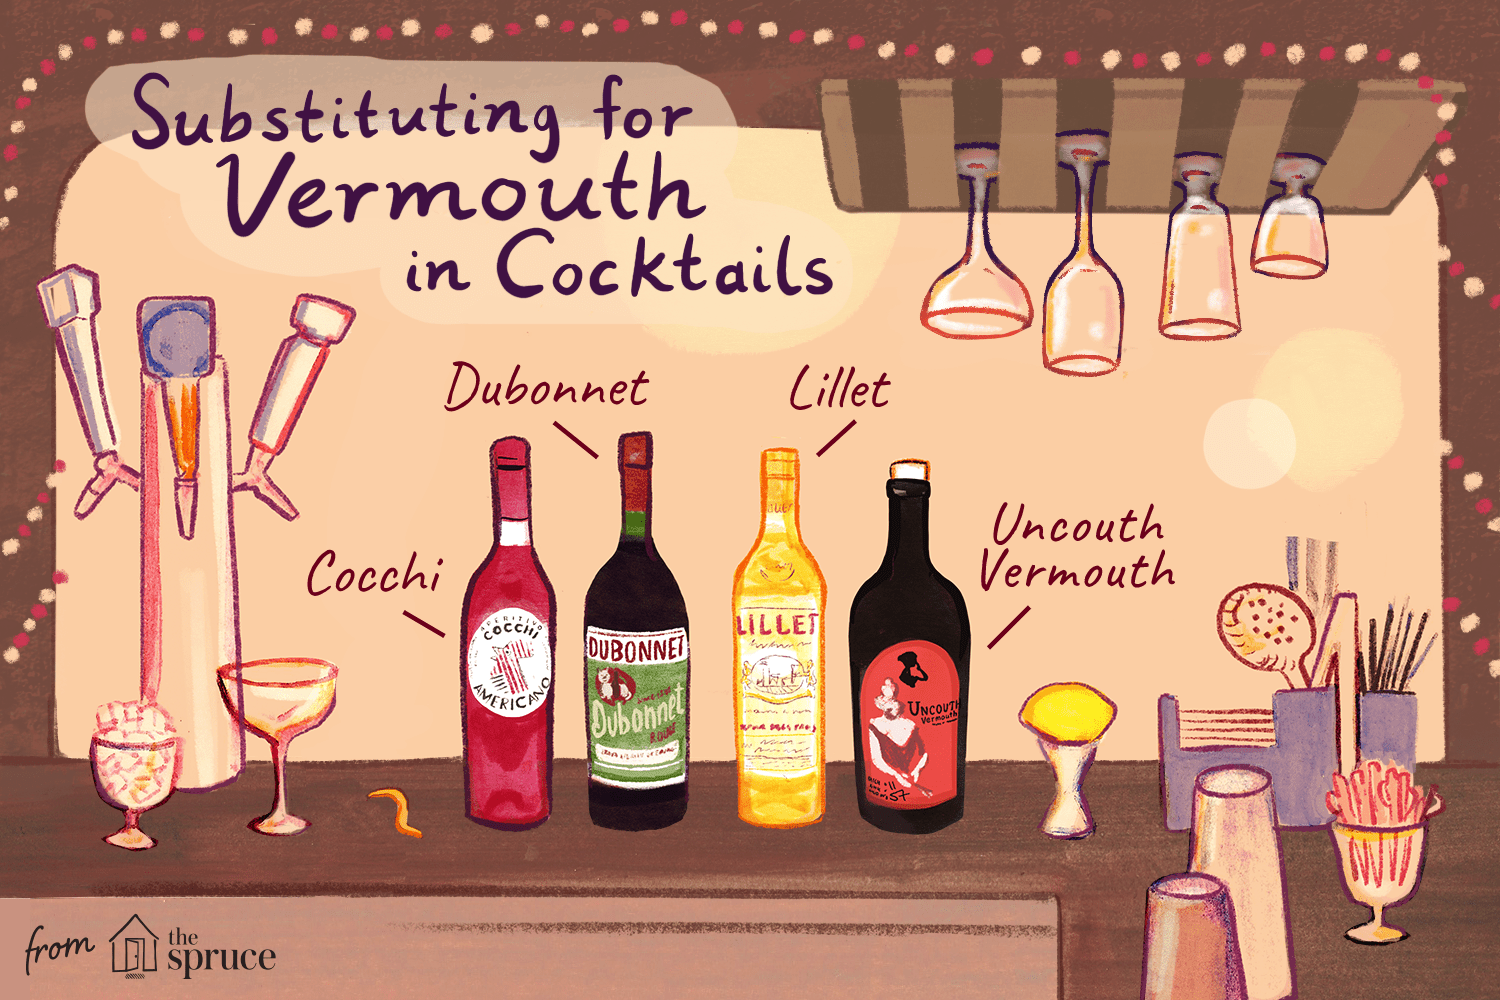 Vermouth substitution